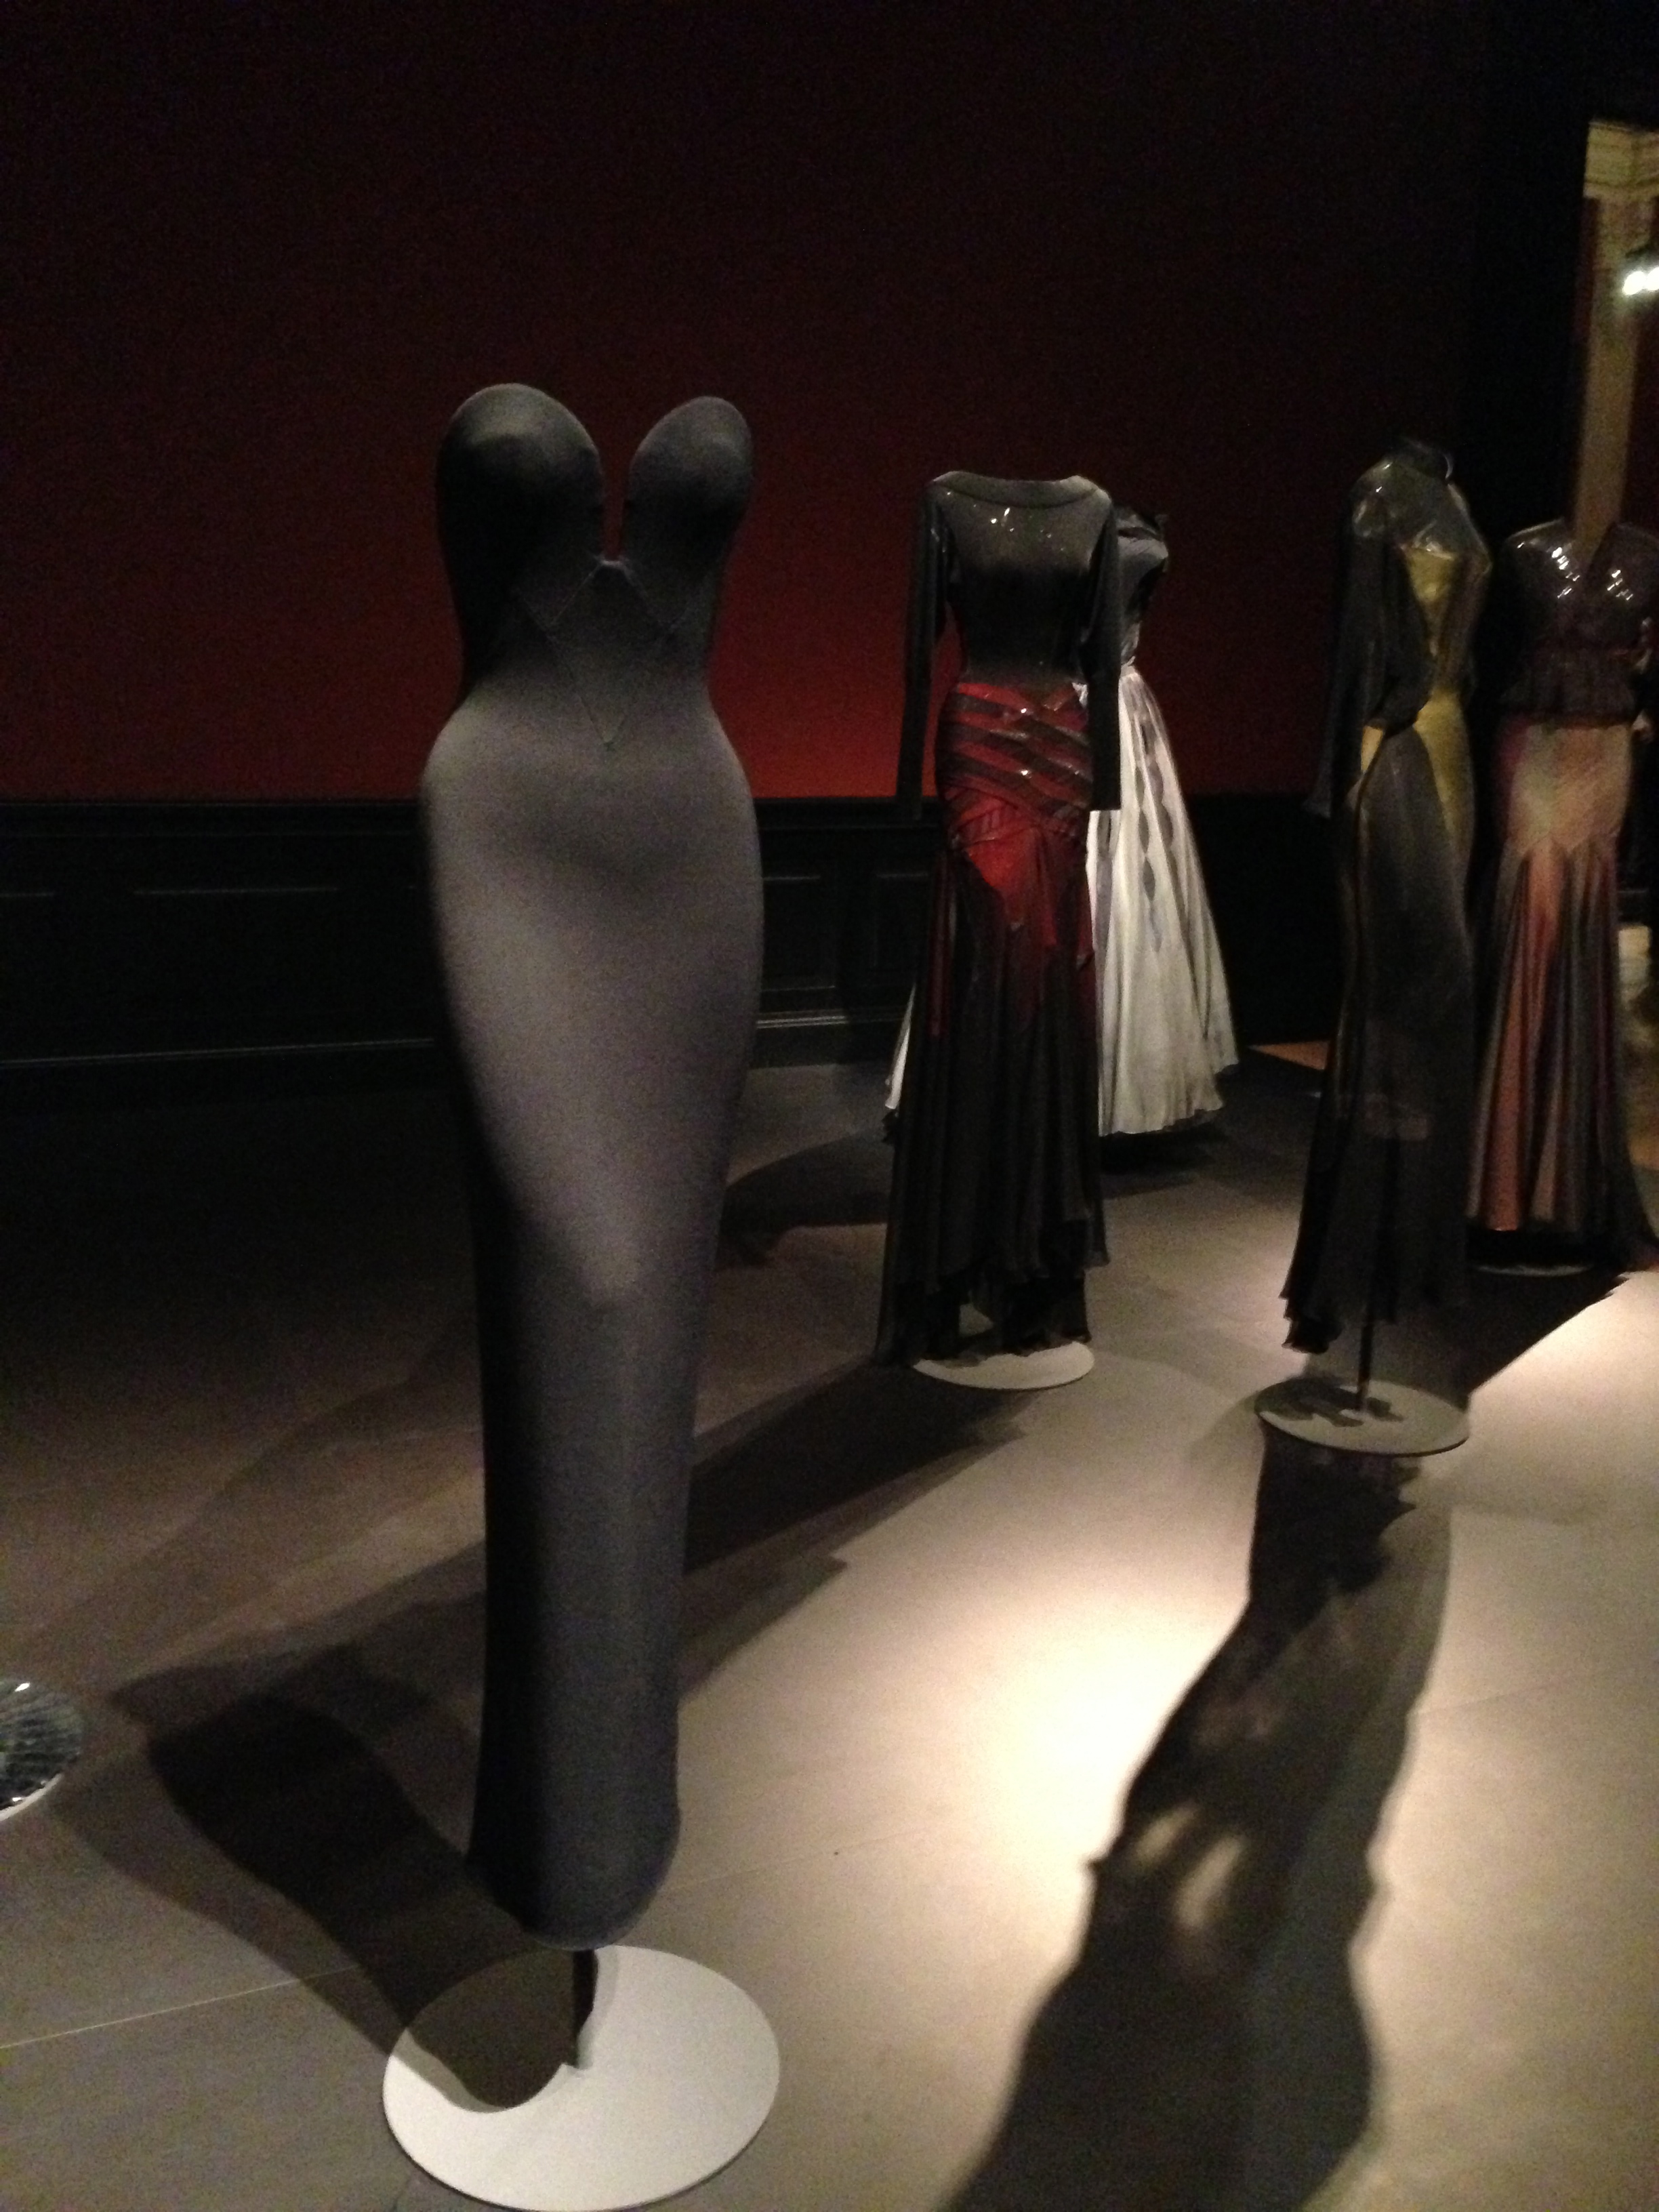 Naomi Cambell, Alaïa exhibition Paris 2013